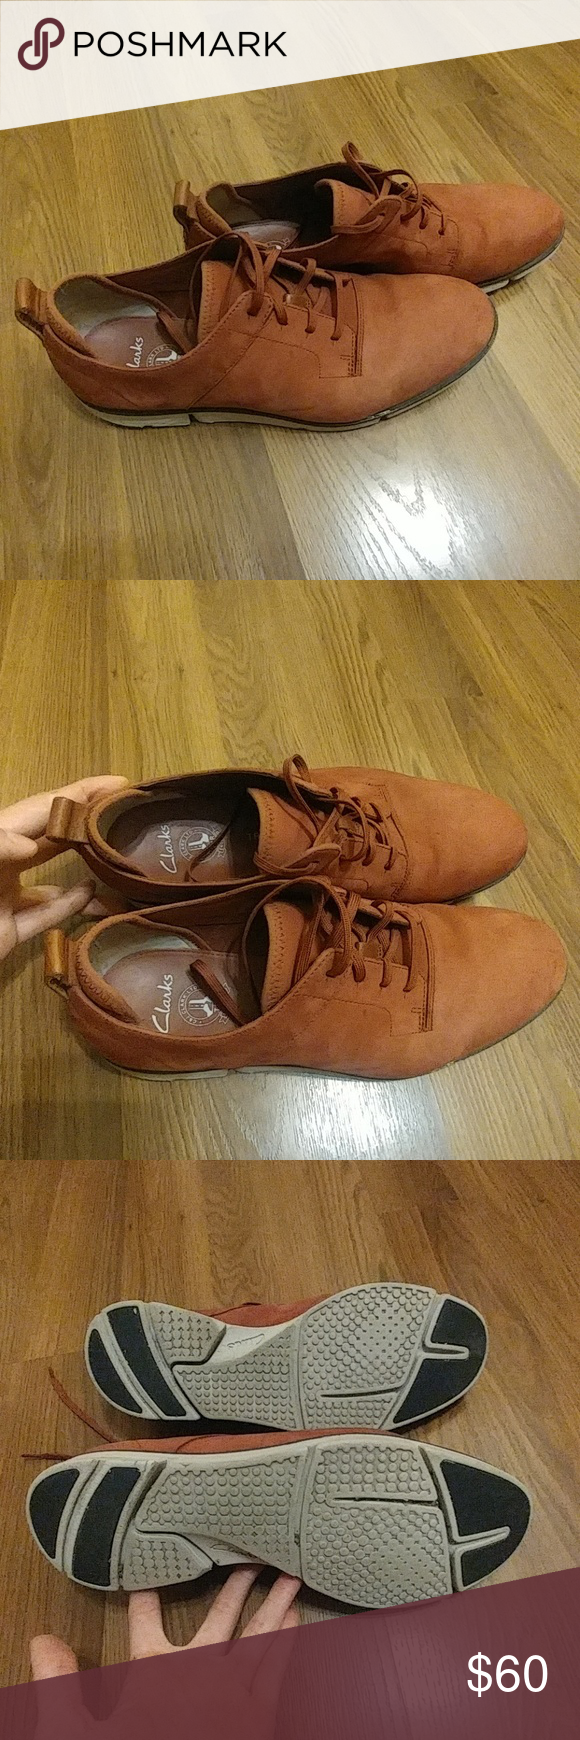 juego Una vez más Permeabilidad  Clarks Trigenic Shoes Beautiful dark amber colored men's leather shoes from Clarks  US Size 10 They have some signs of wear on … | Leather shoes men, Clarks,  Shoes